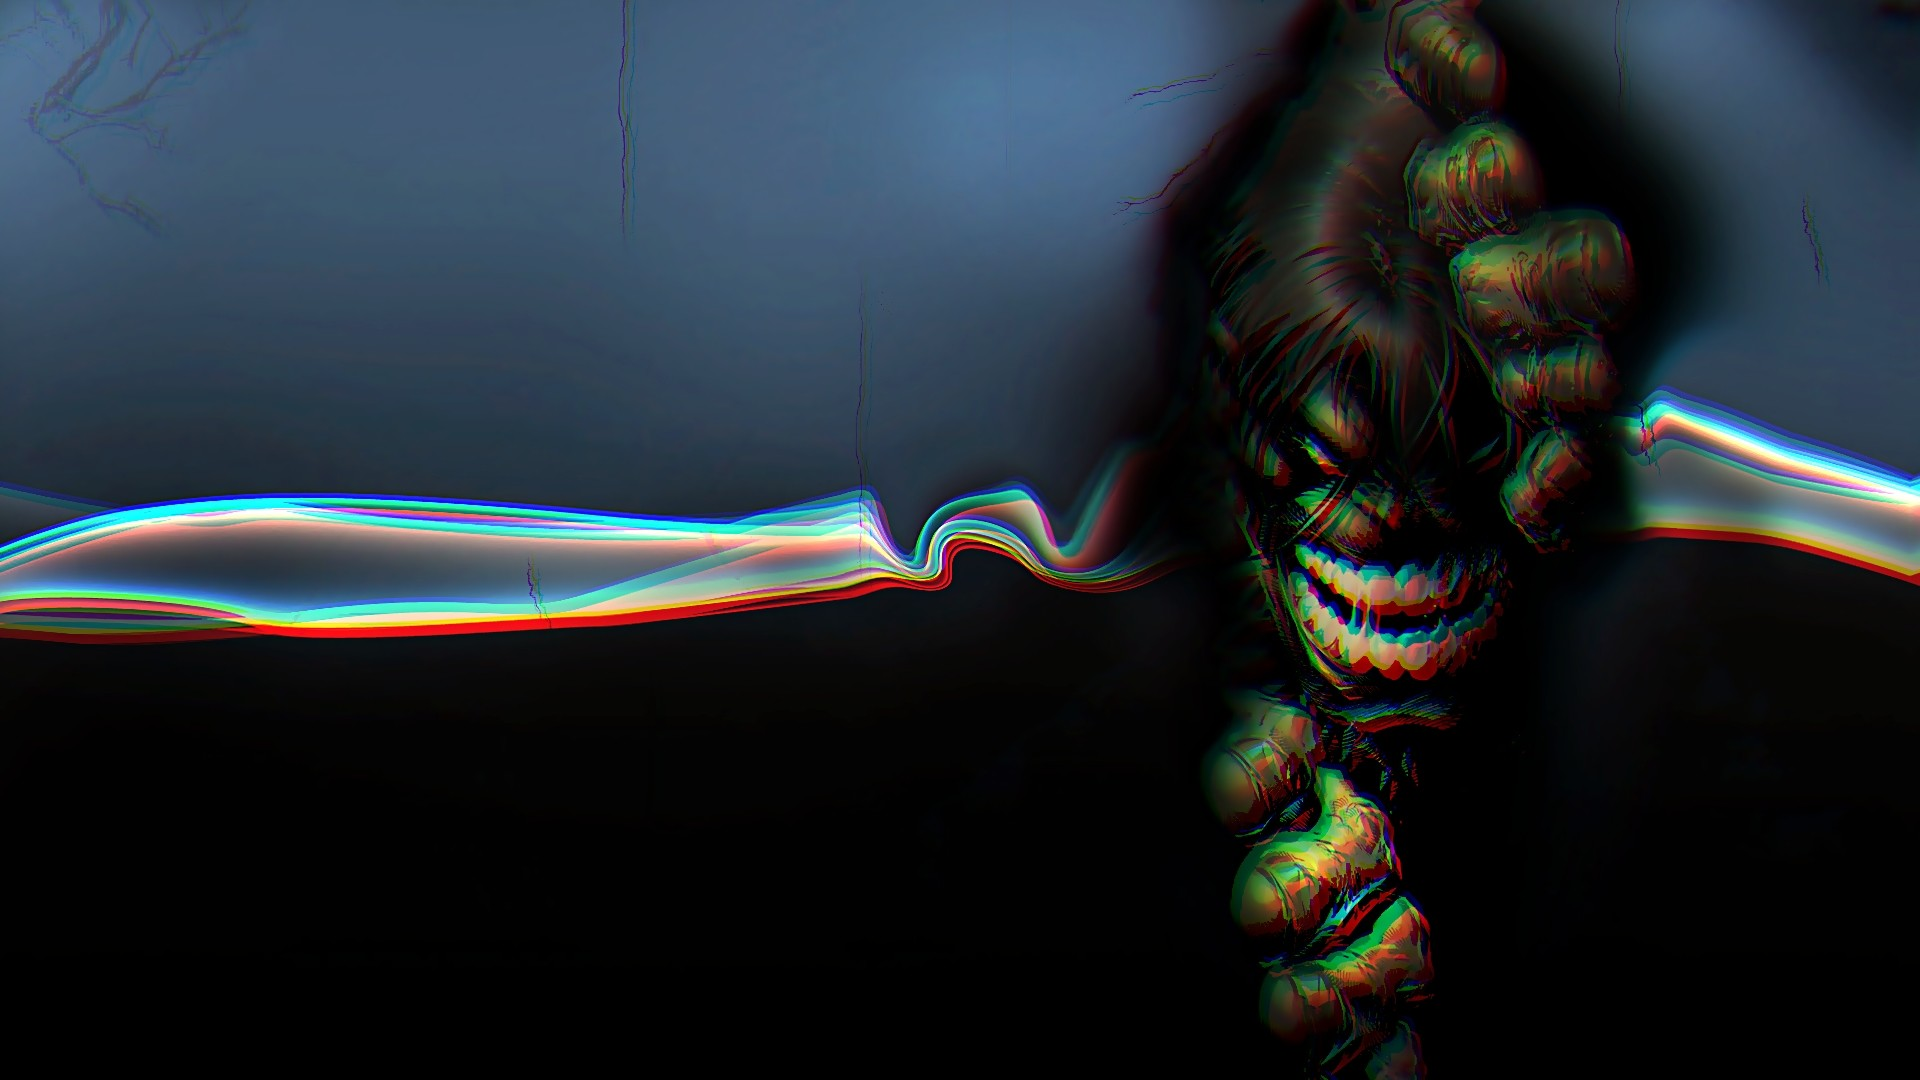 … Background Full HD 1080p. Wallpaper hulk, 3d, anaglyph,  graphics, bright